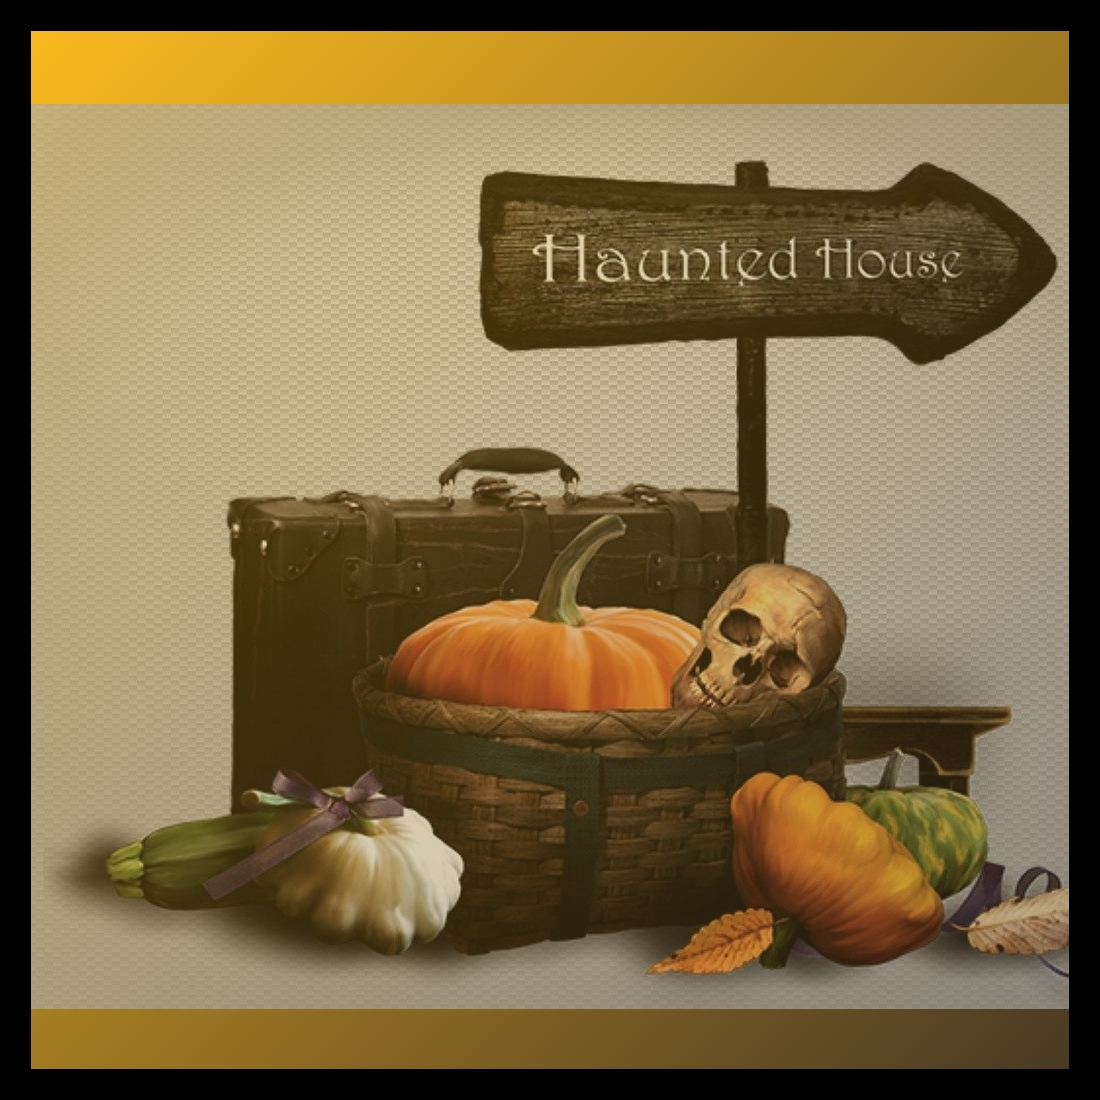 Of Course It's Haunted!